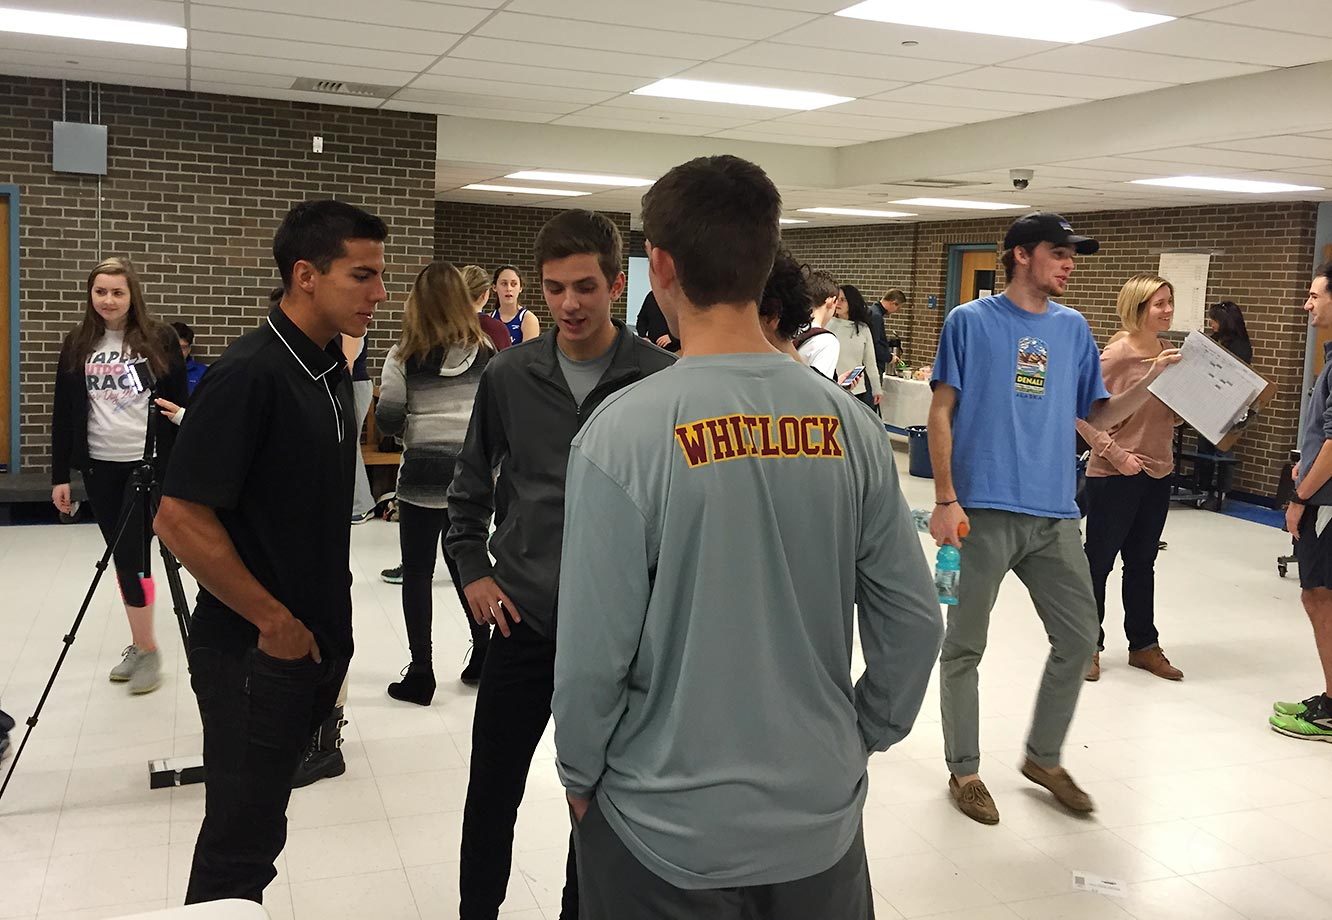 Donn Cabral, world-renowned cross country and track athlete, chats with students during the event recognizing Hannah DeBalsi as the High School Athlete selection for December.